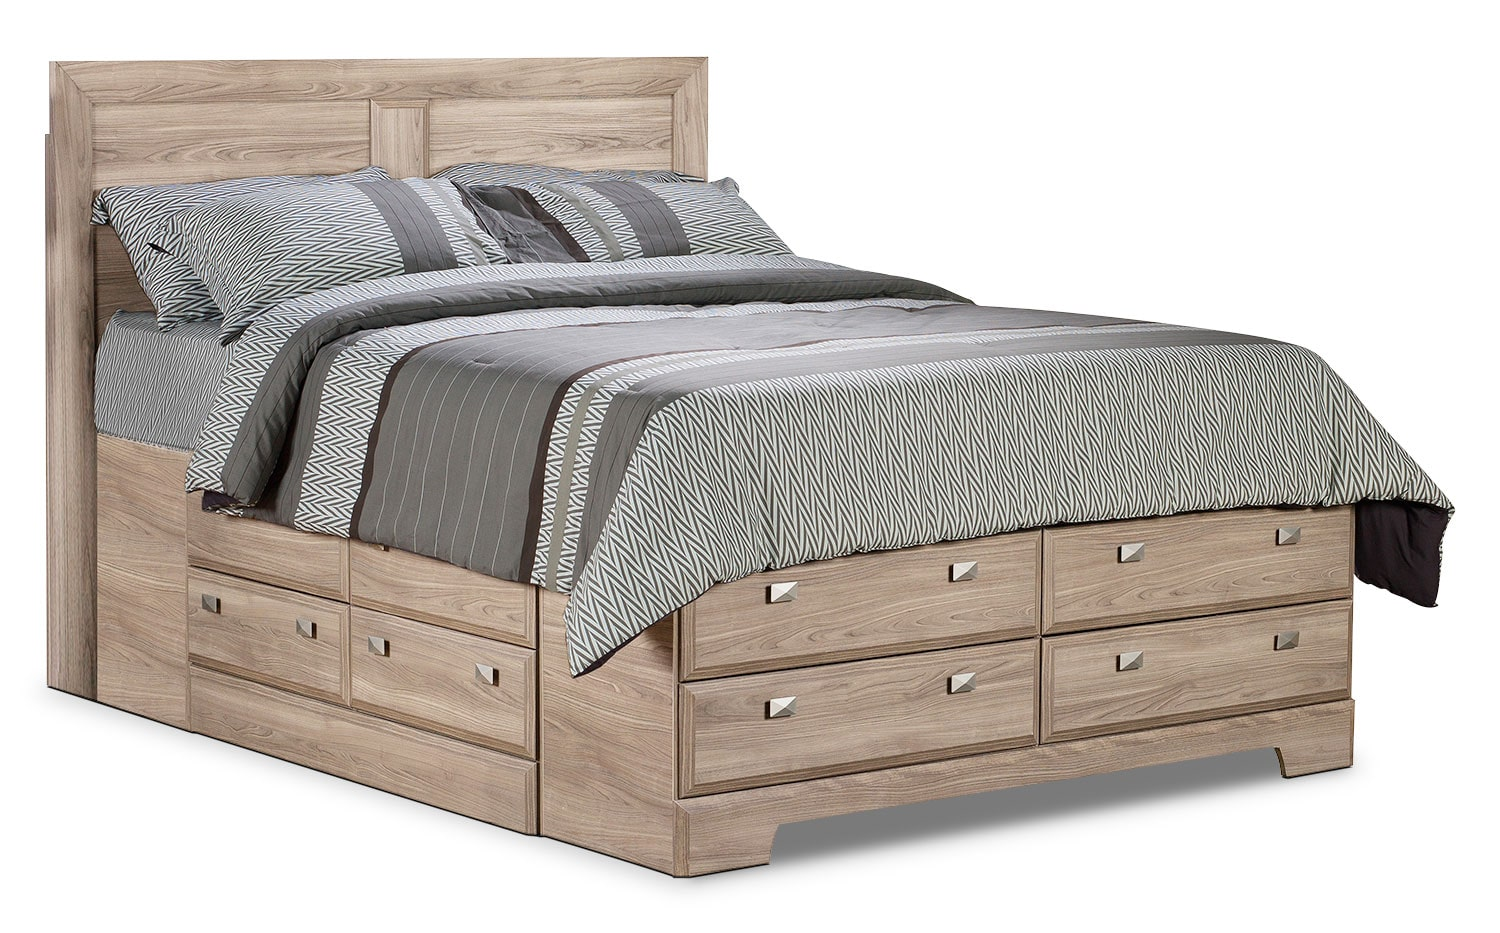 Bedroom Furniture - Yorkdale Light Queen Storage Bed